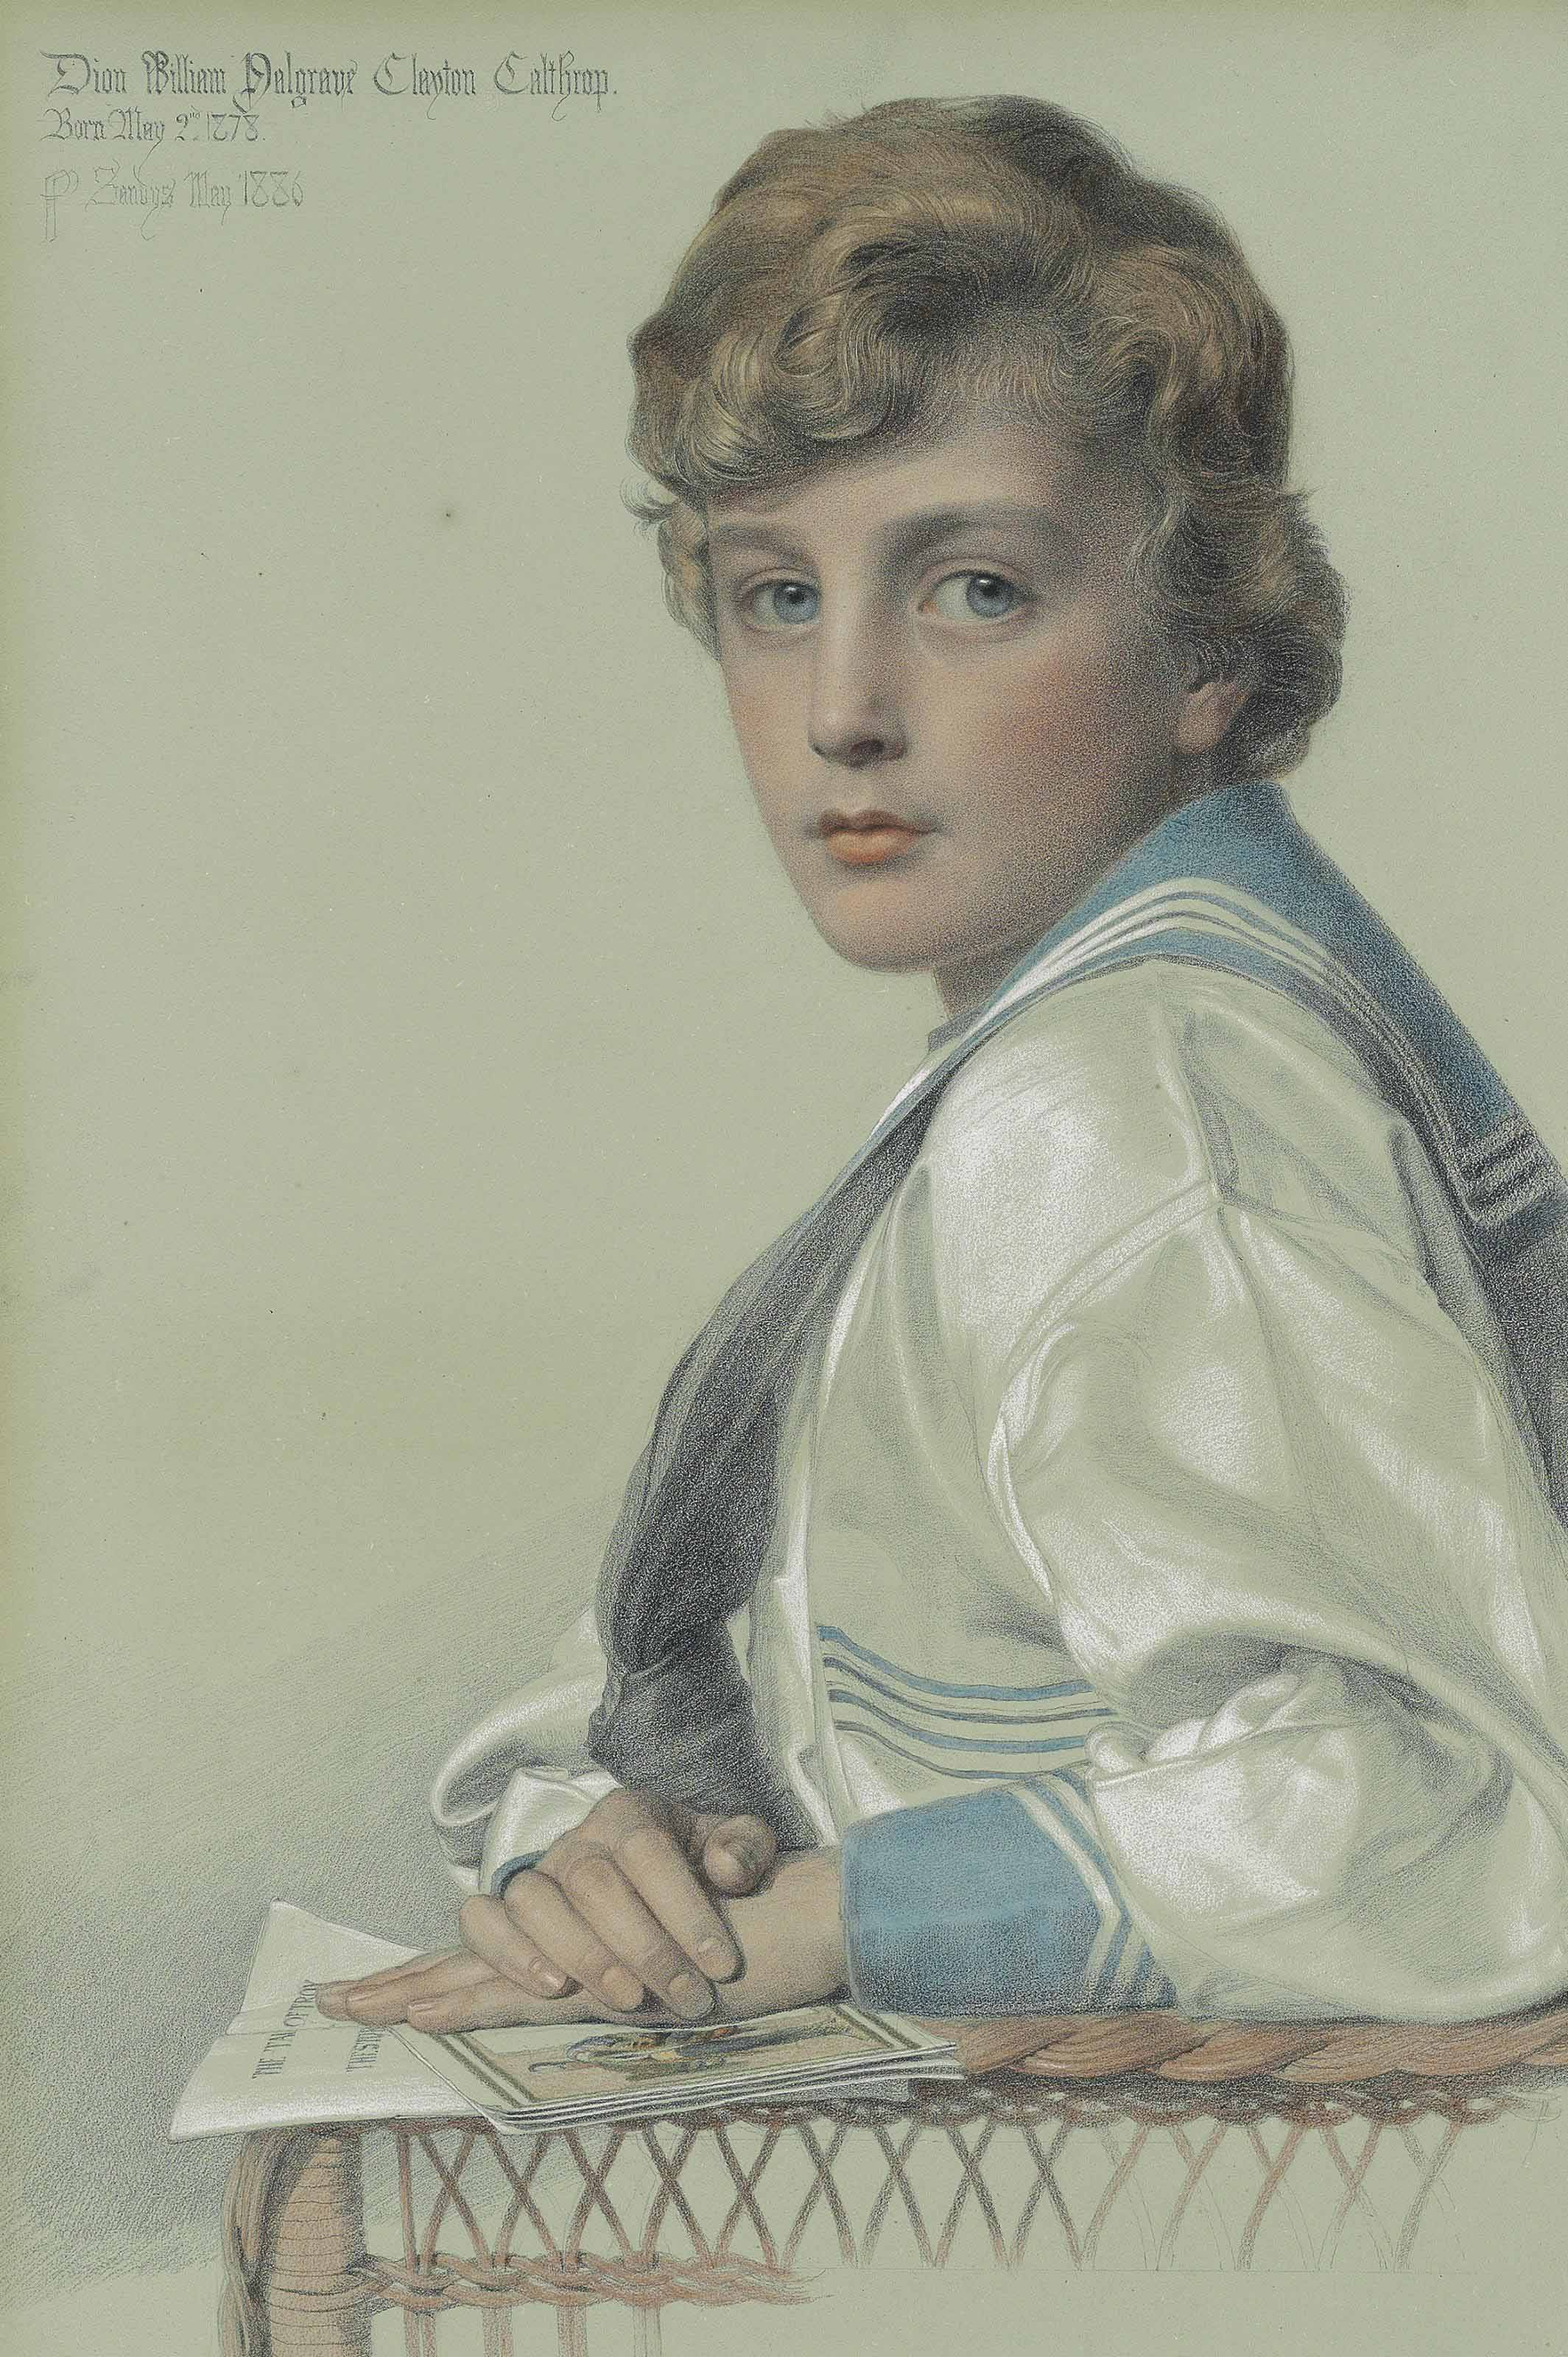 Dion William Palgrave Clayton Calthrop, aged eight